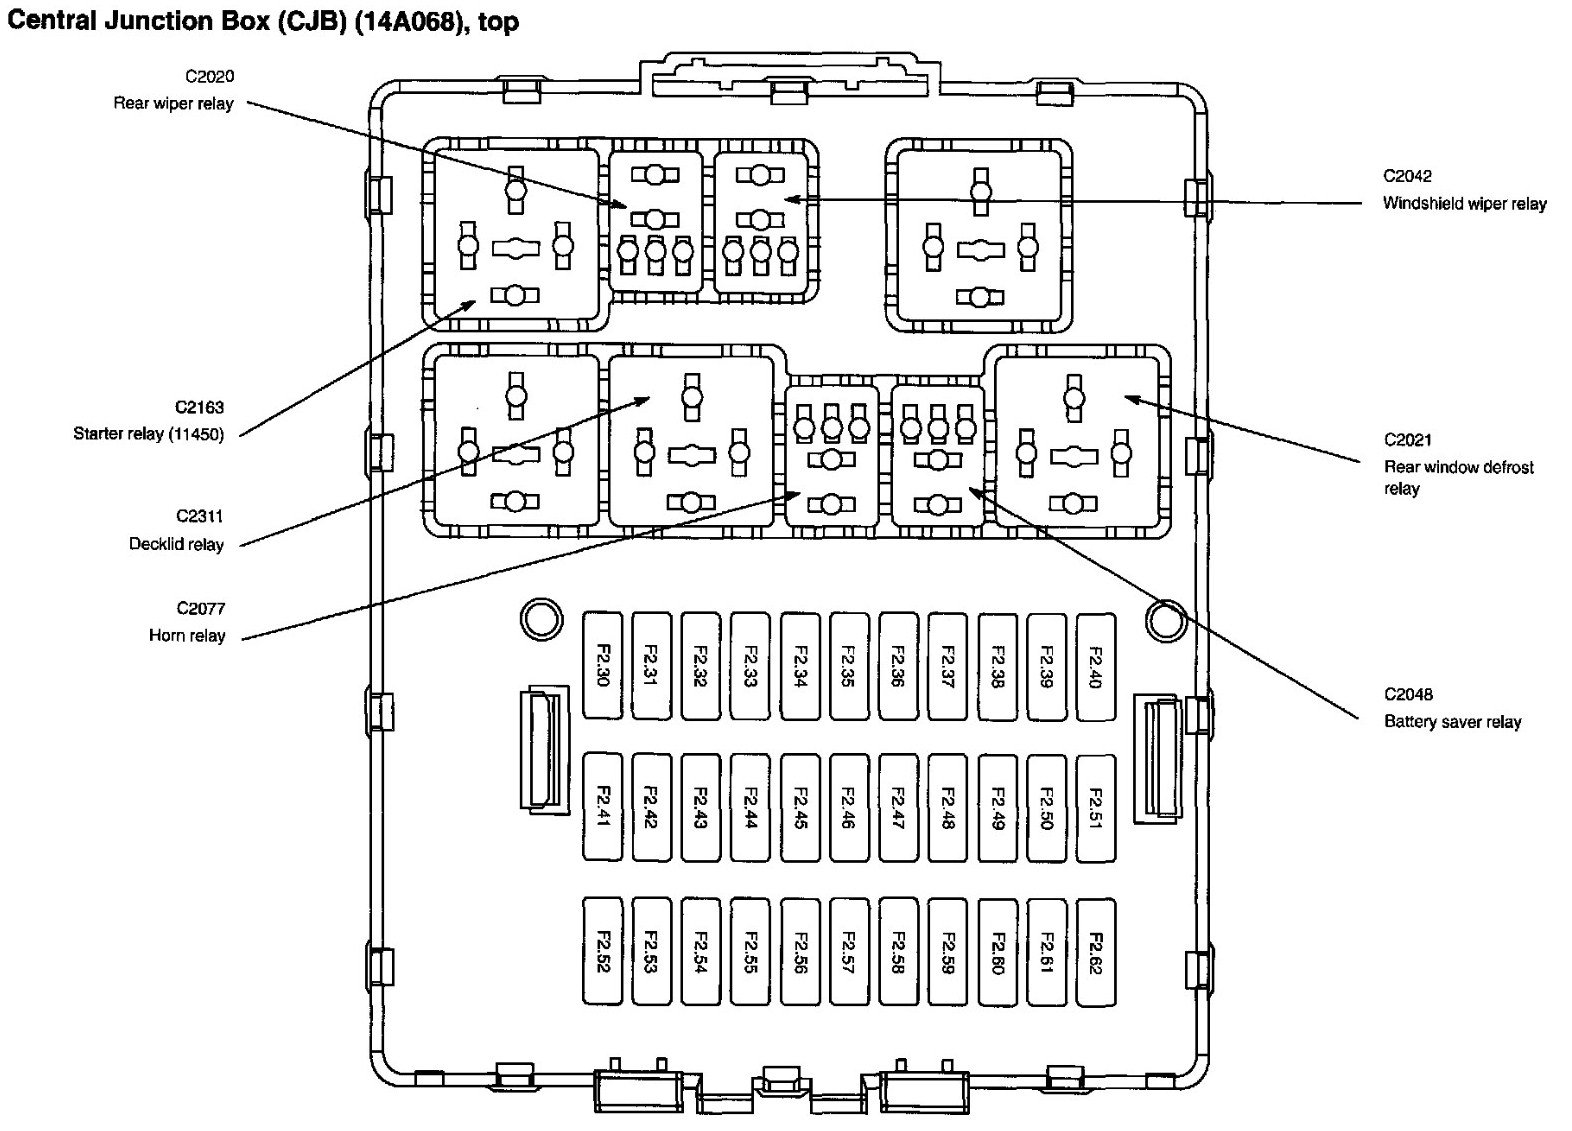 need to know where the fuse is located for a 2005 ford focus se zx3 rh justanswer com 2005 ford focus zx4 fuse box diagram 2005 ford focus zx3 fuse diagram